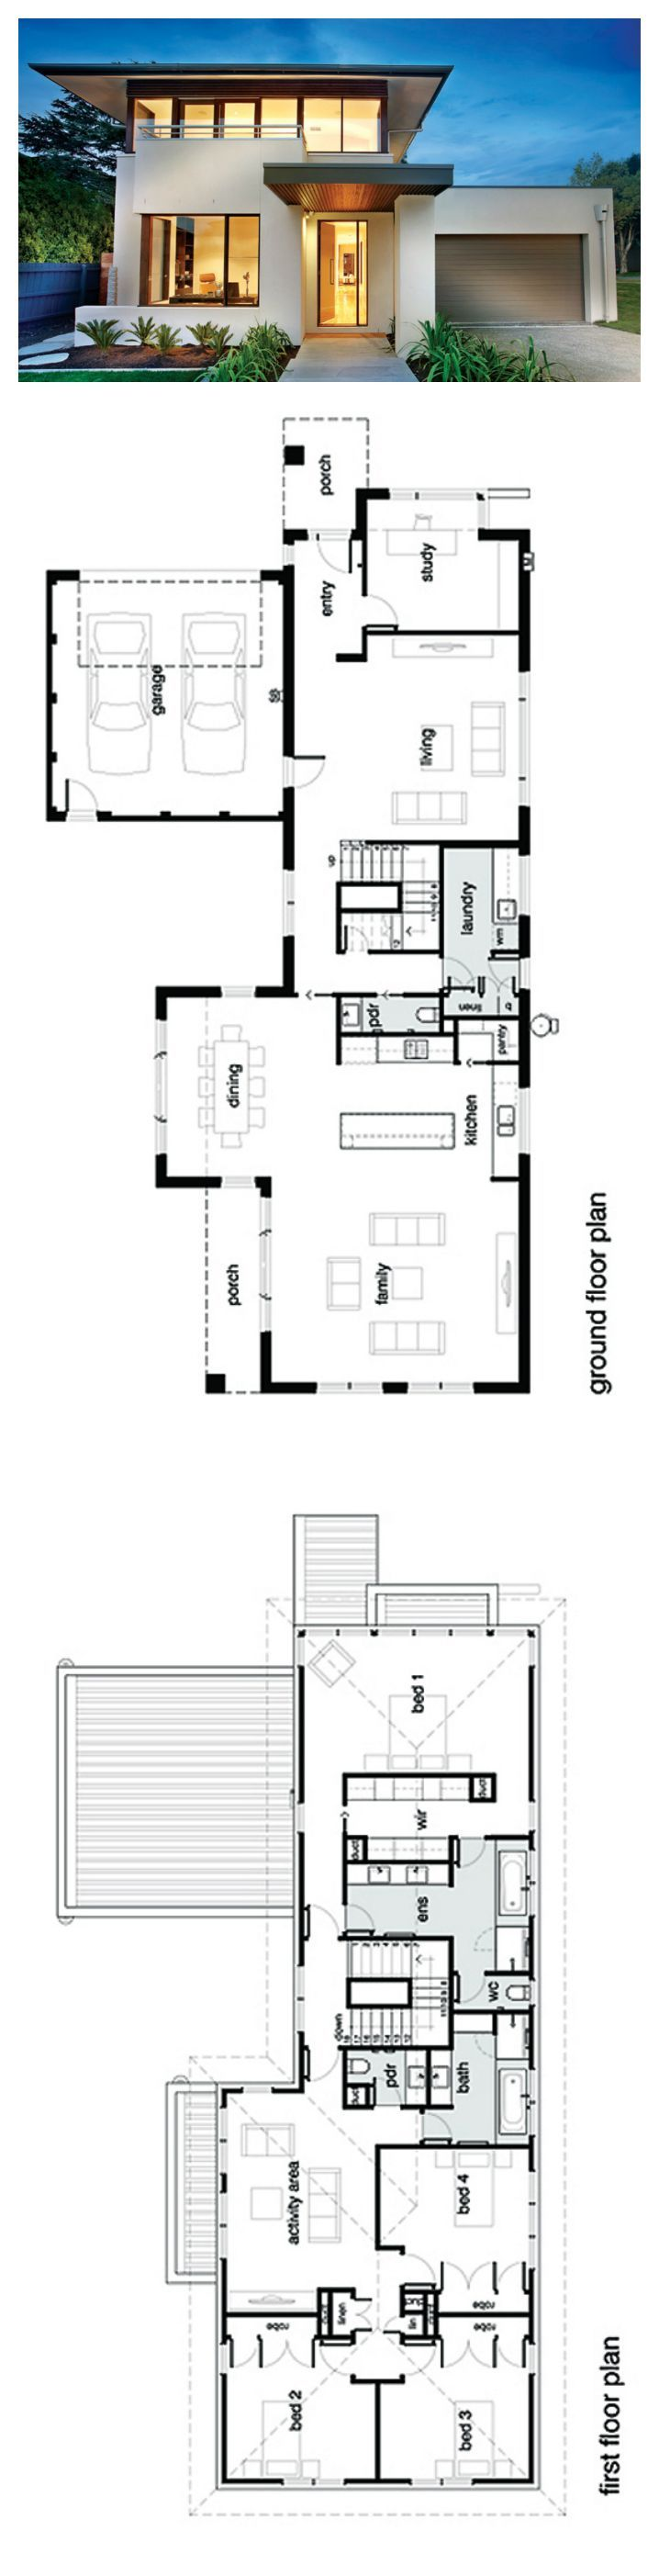 Best 25 modern house plans ideas on pinterest modern Modern home building plans